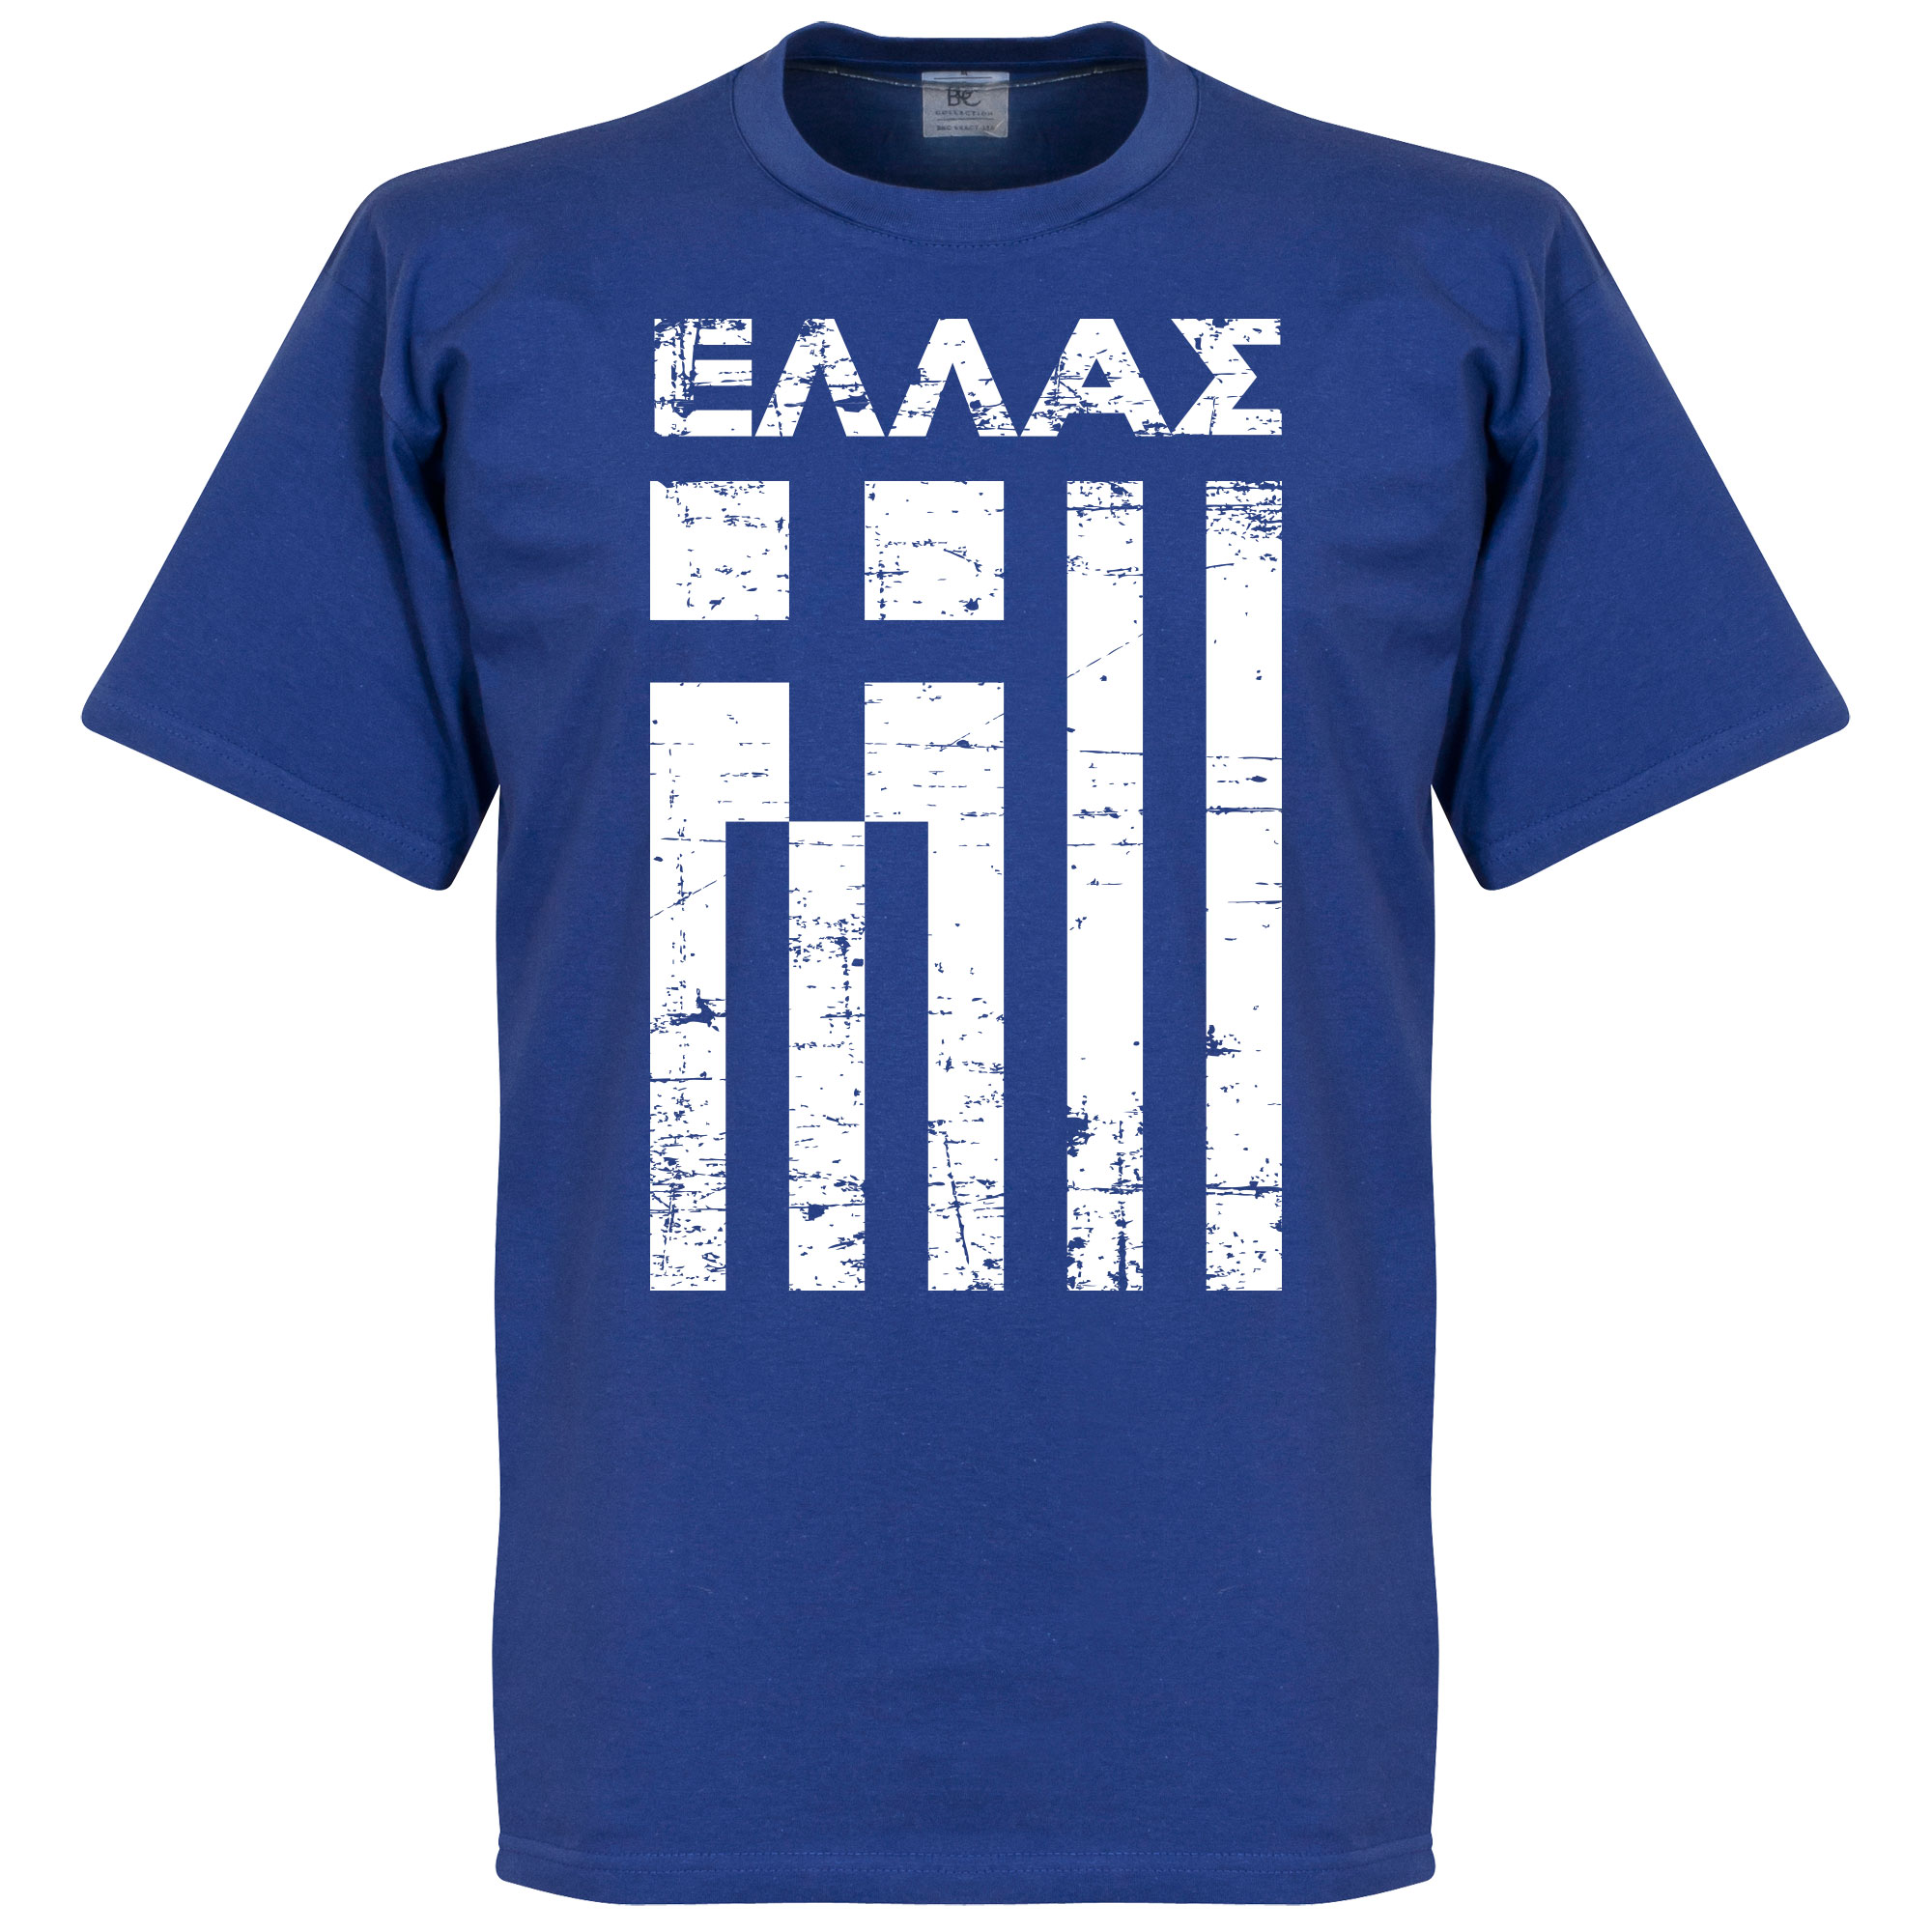 Greece Vintage Tee - Royal - XXXXL